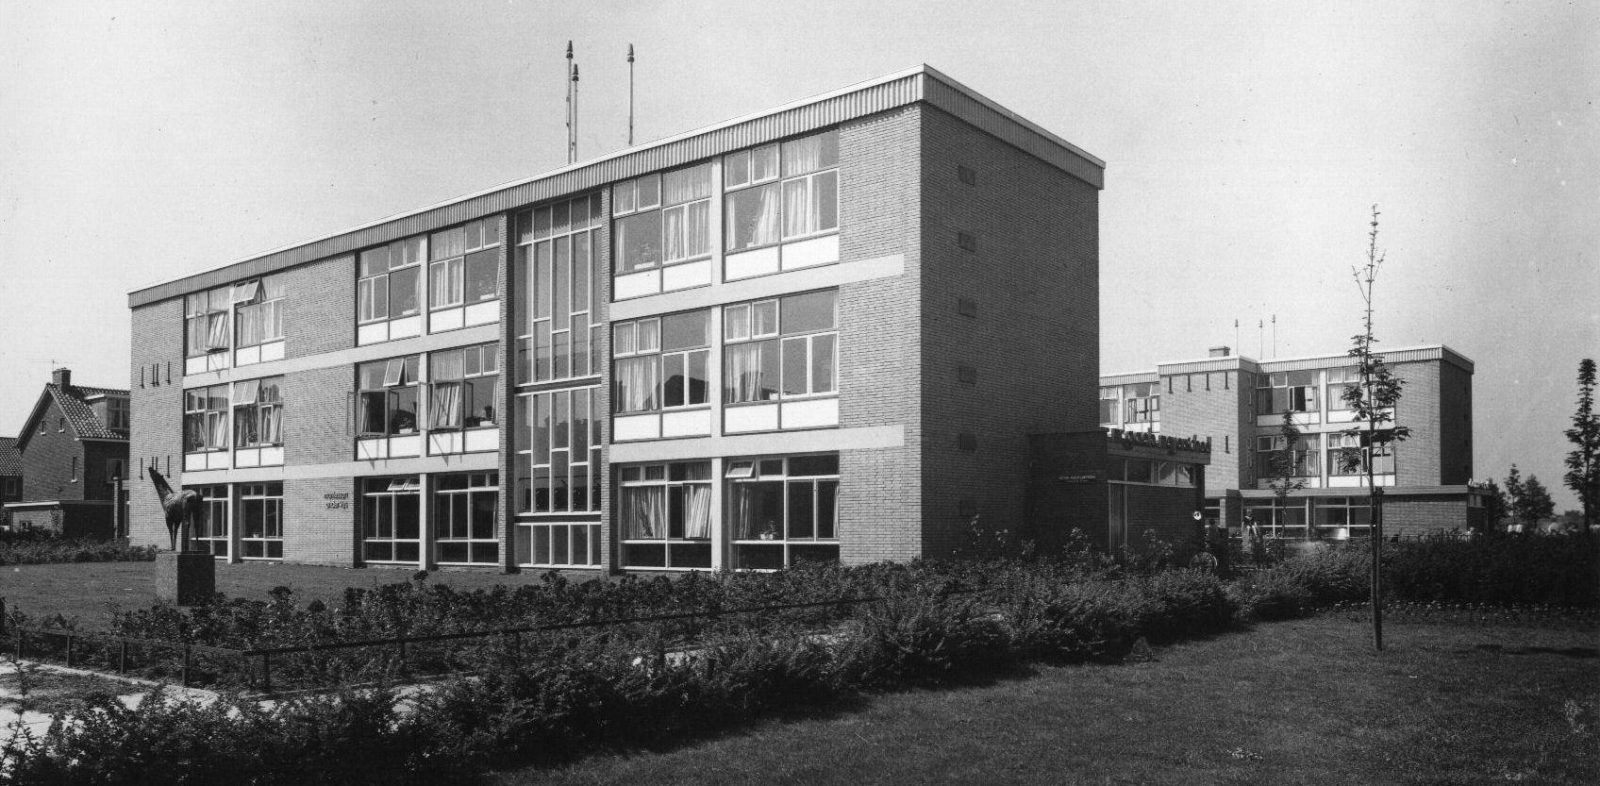 Montesorischool 1957 (HUA 45102)